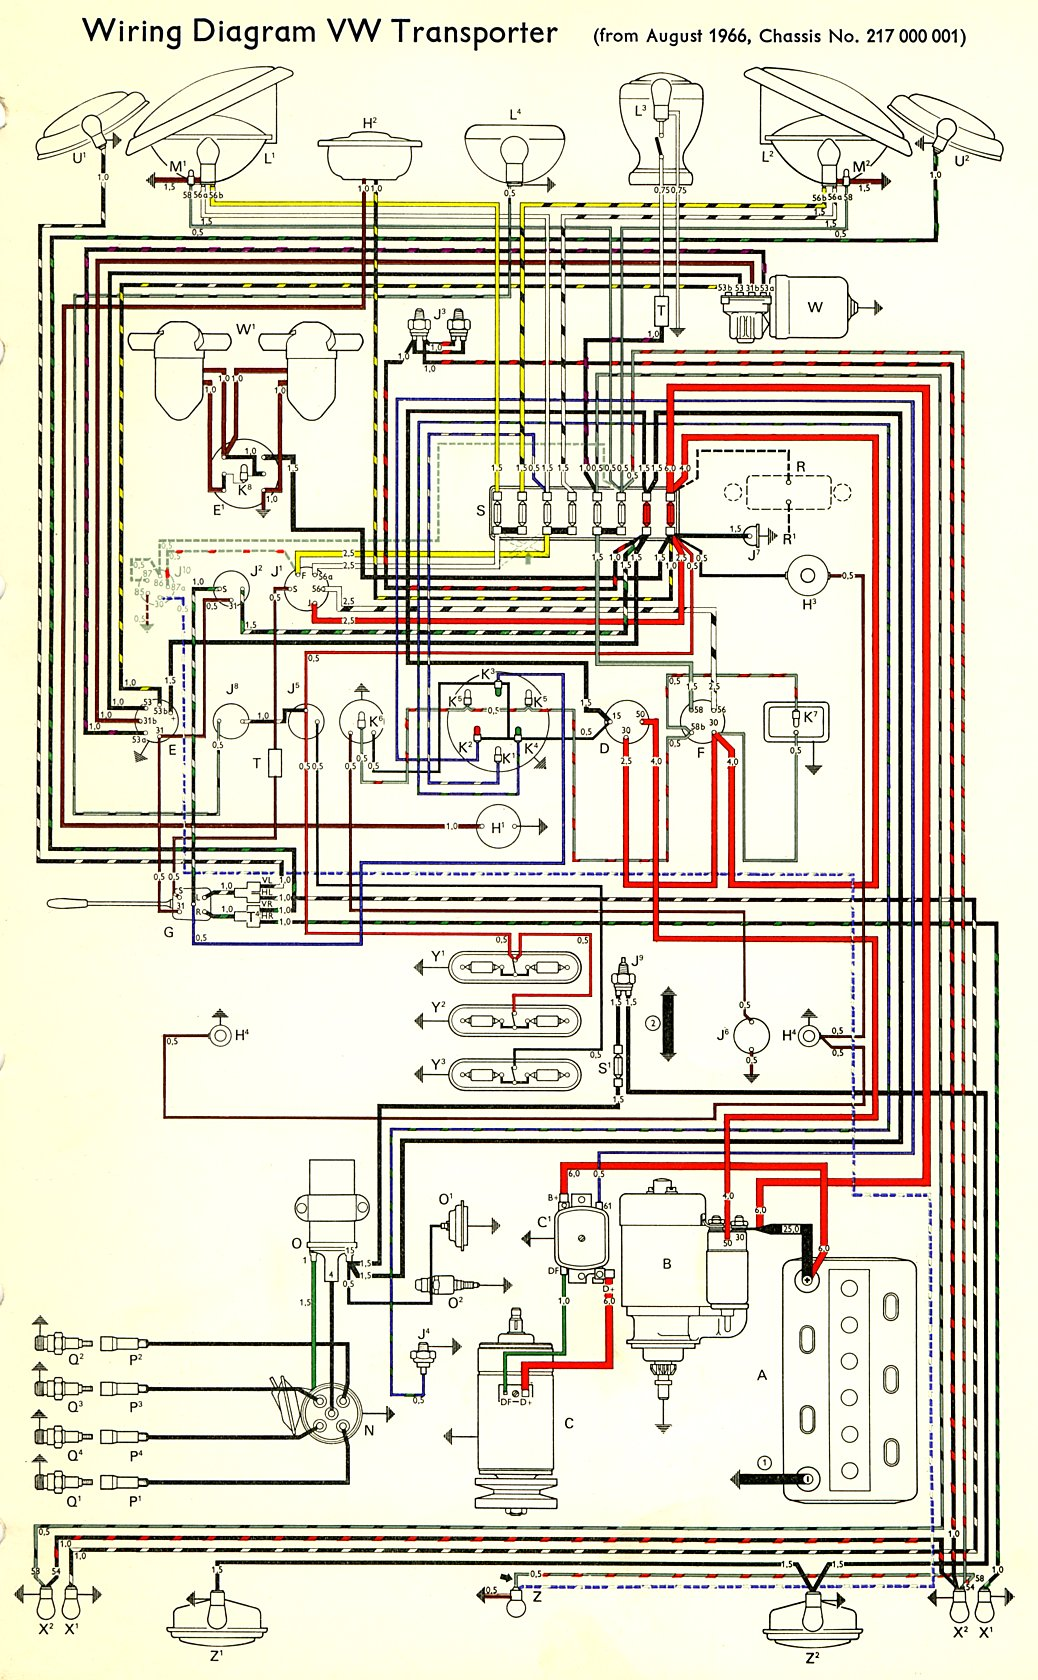 bus_67 67 vw bus wiring harness 71 vw wiring harness \u2022 wiring diagrams Wiring Harness Diagram at creativeand.co